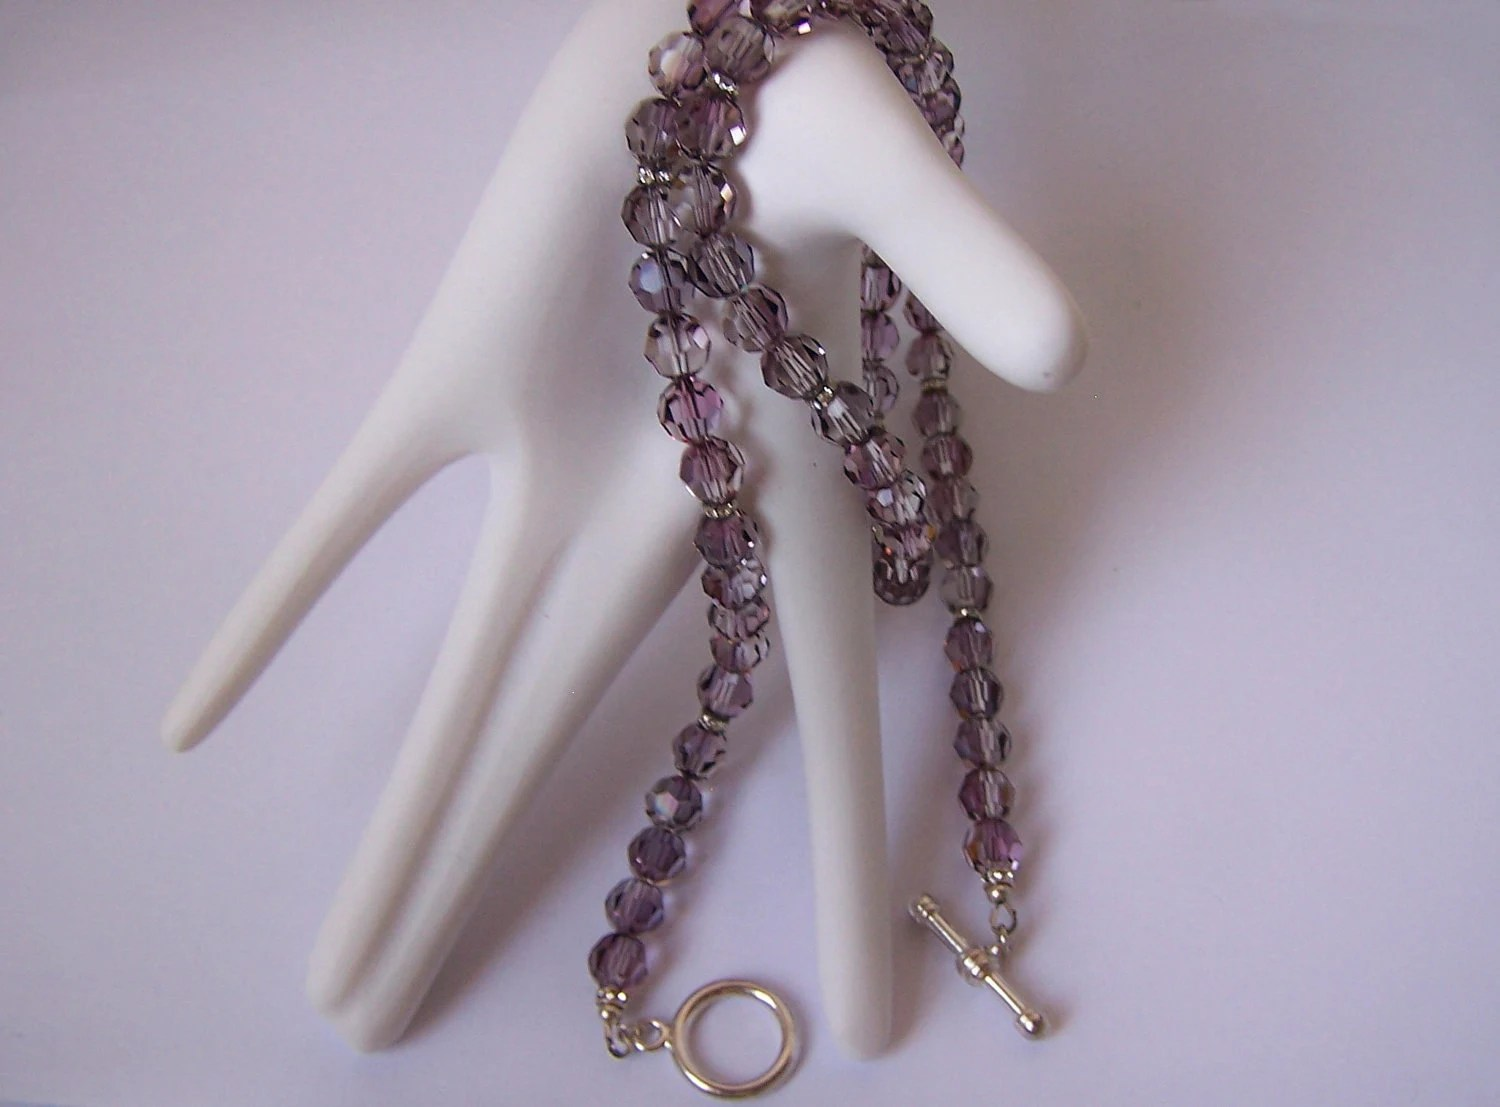 Swarovski Antique Pink 8mm Faceted Round Crystal Bead Matinee Length Necklace with Silver Toggle Clasp